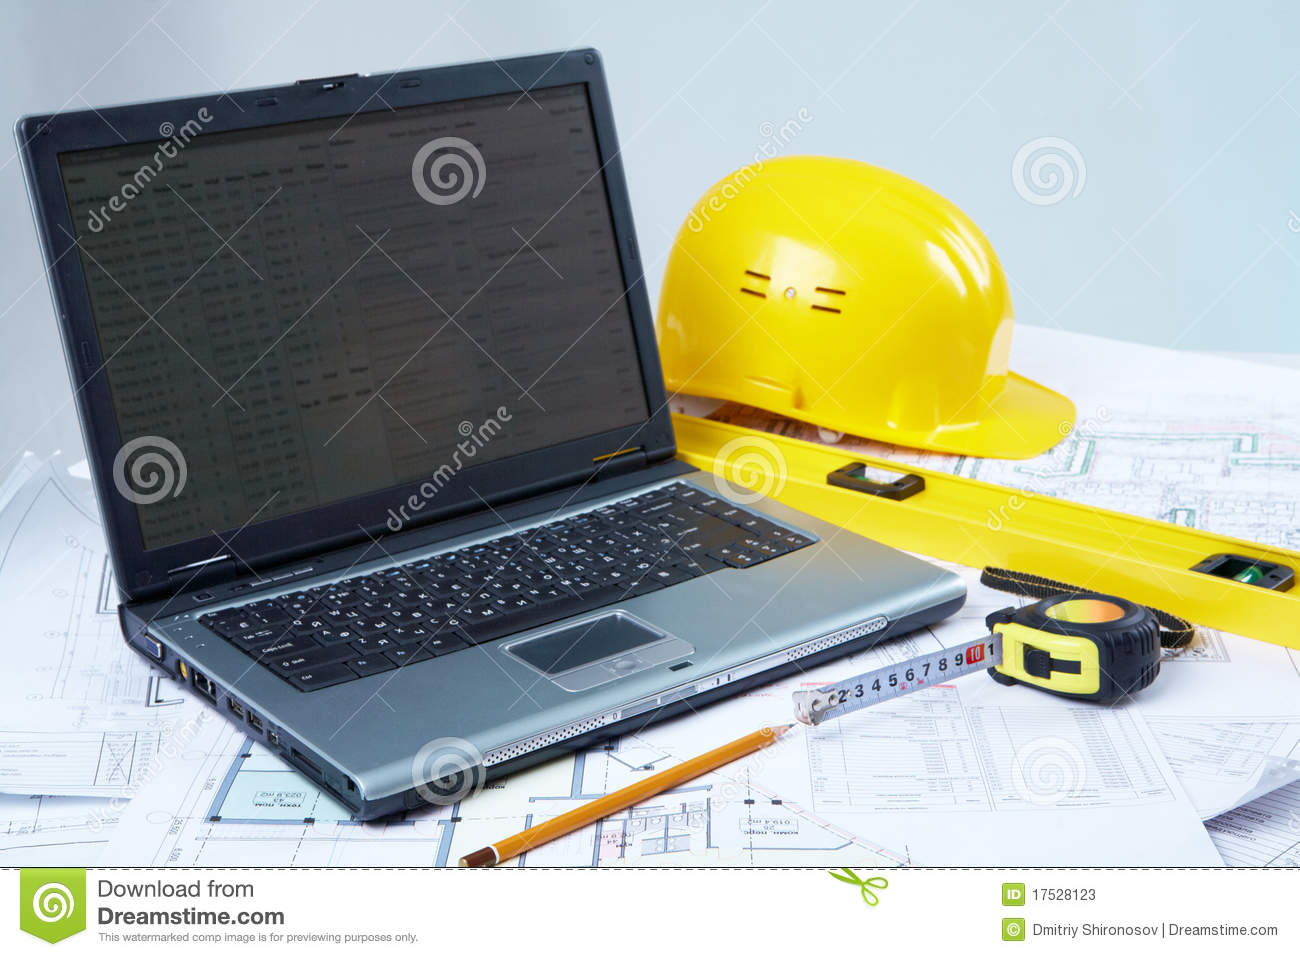 Tools for architectural design stock photos image 17528123 for Online architecture design tool